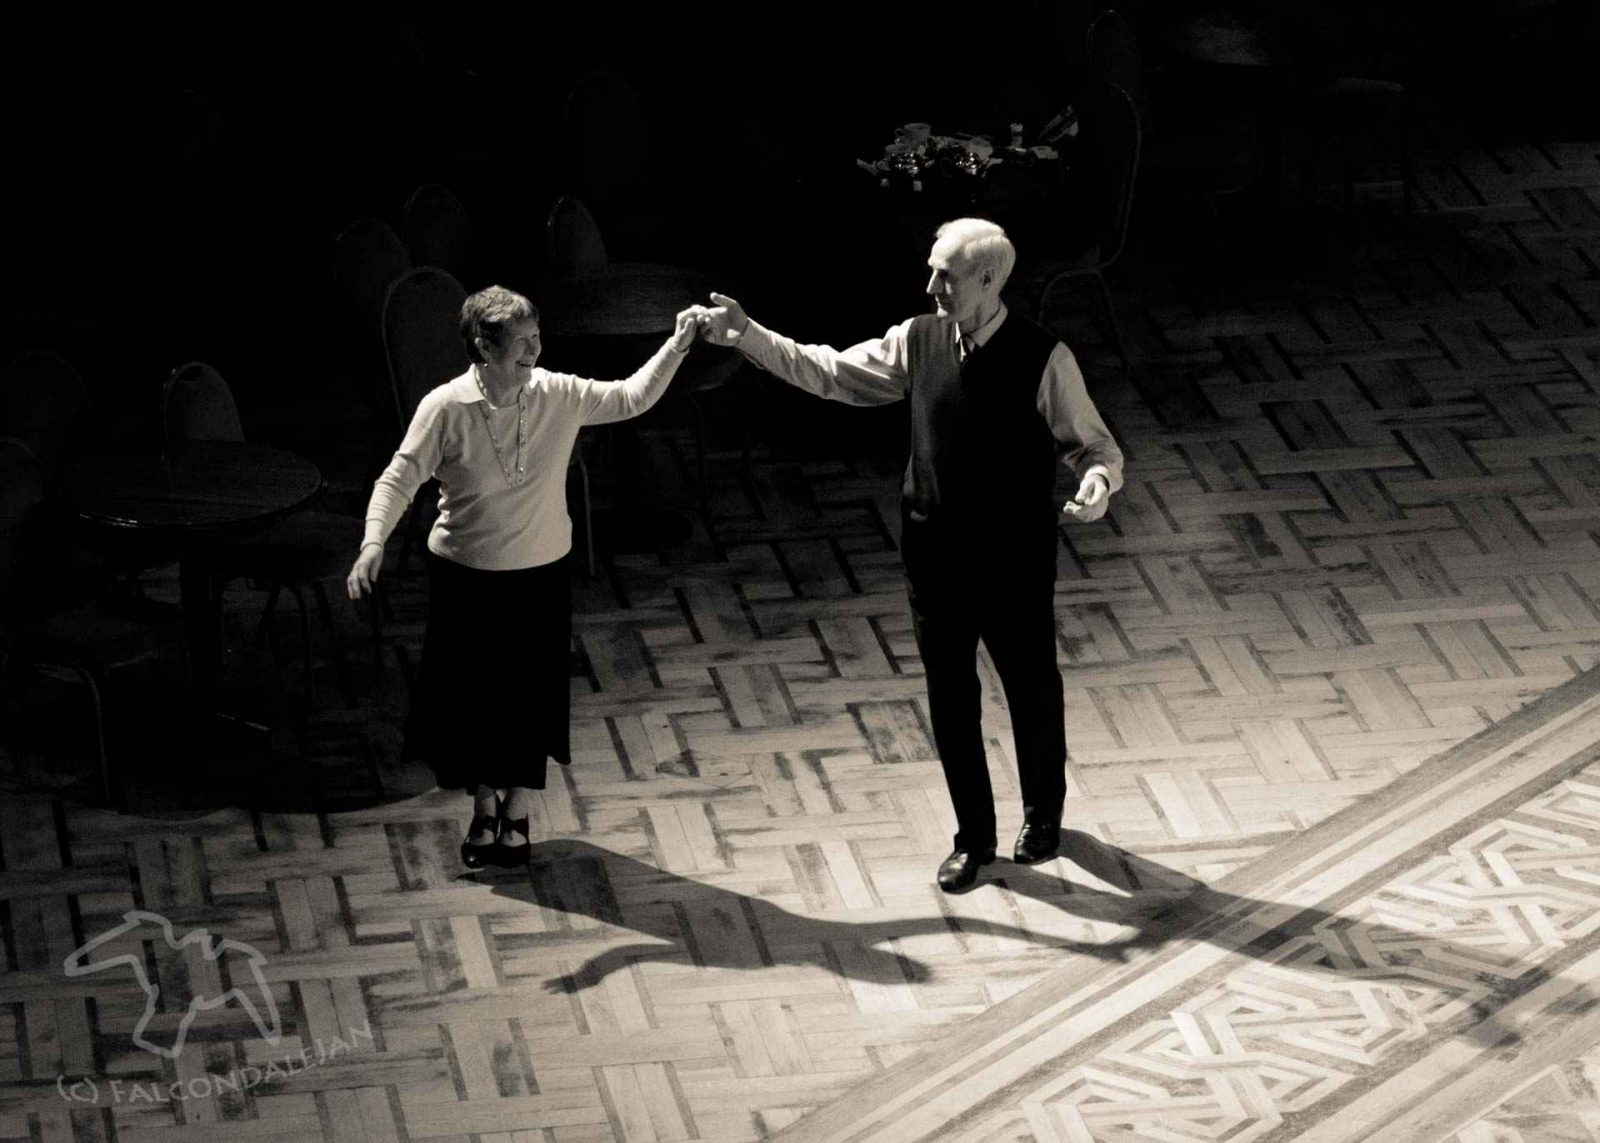 A couple on the dancefloor at Blackpool Tower Ballroom, a dramatic image in black and white. A blog series about monochrome photography. Here's how I decide when to turn a photo from colour to black and white. The reason may be anything from finding real beauty in the image to saving it from the bin. First in the blog series is the high contrast photo. By Falcondalejan.